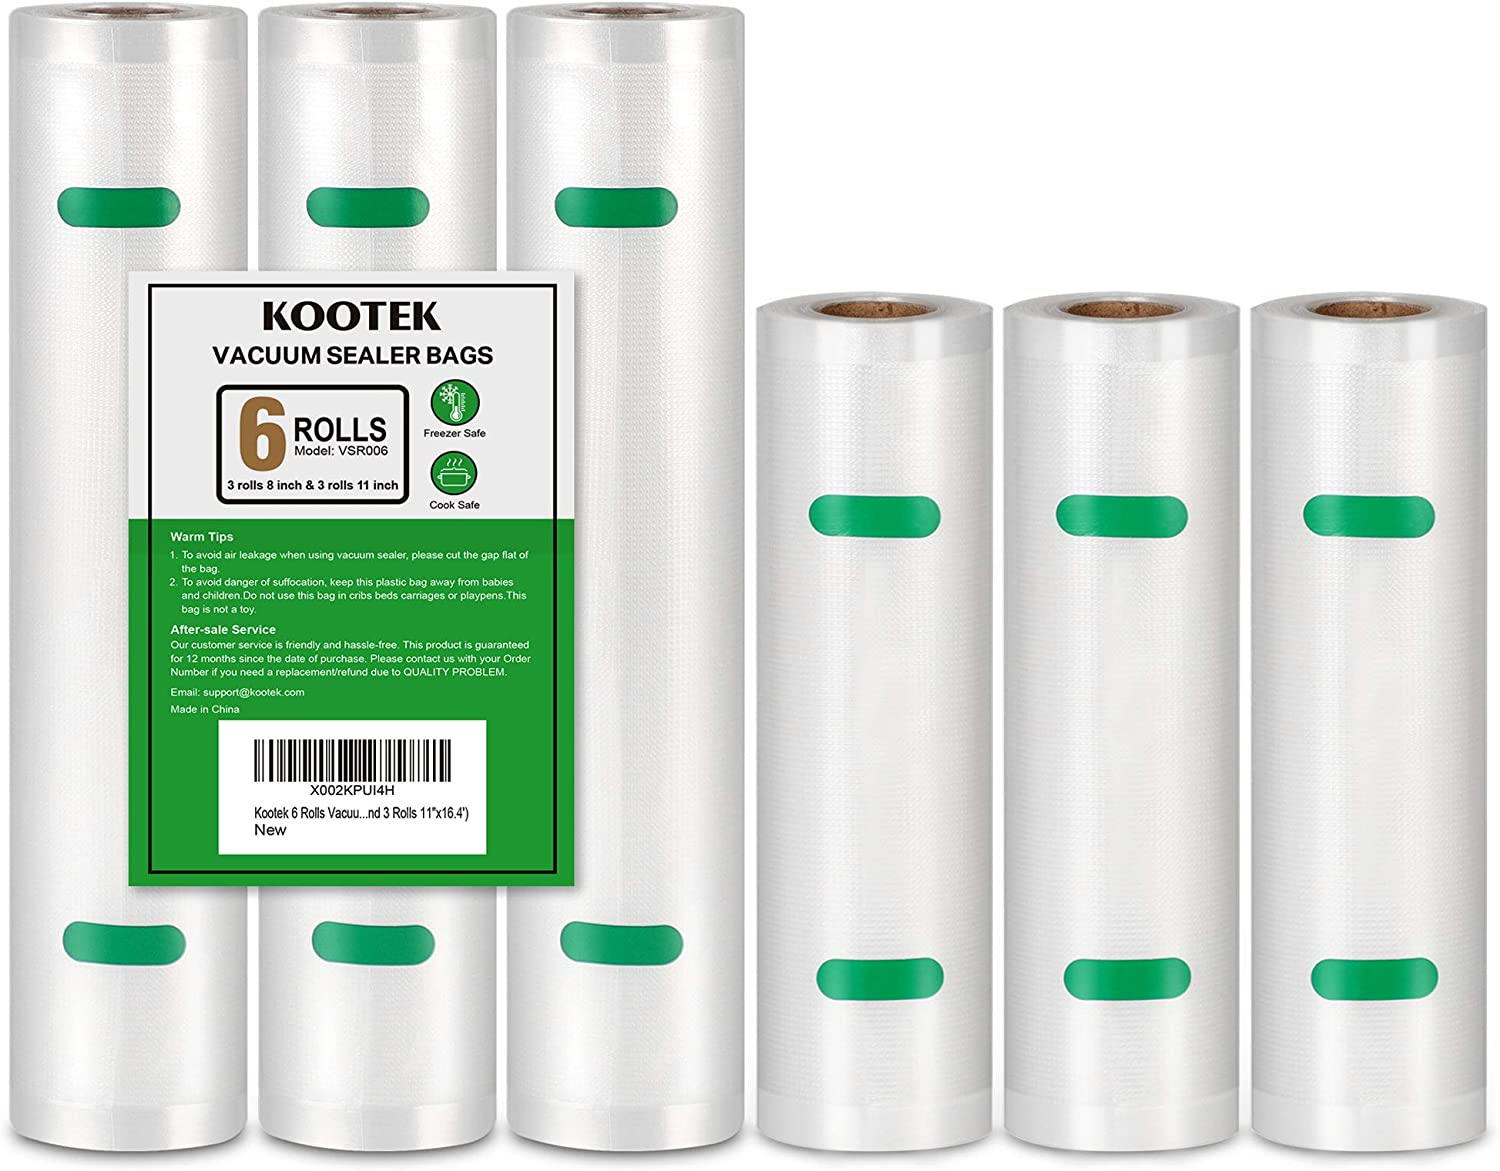 Kootek 6 Rolls Vacuum Max 79% OFF New products, world's highest quality popular! Sealer Bags Food Heavy for Thicker Saver